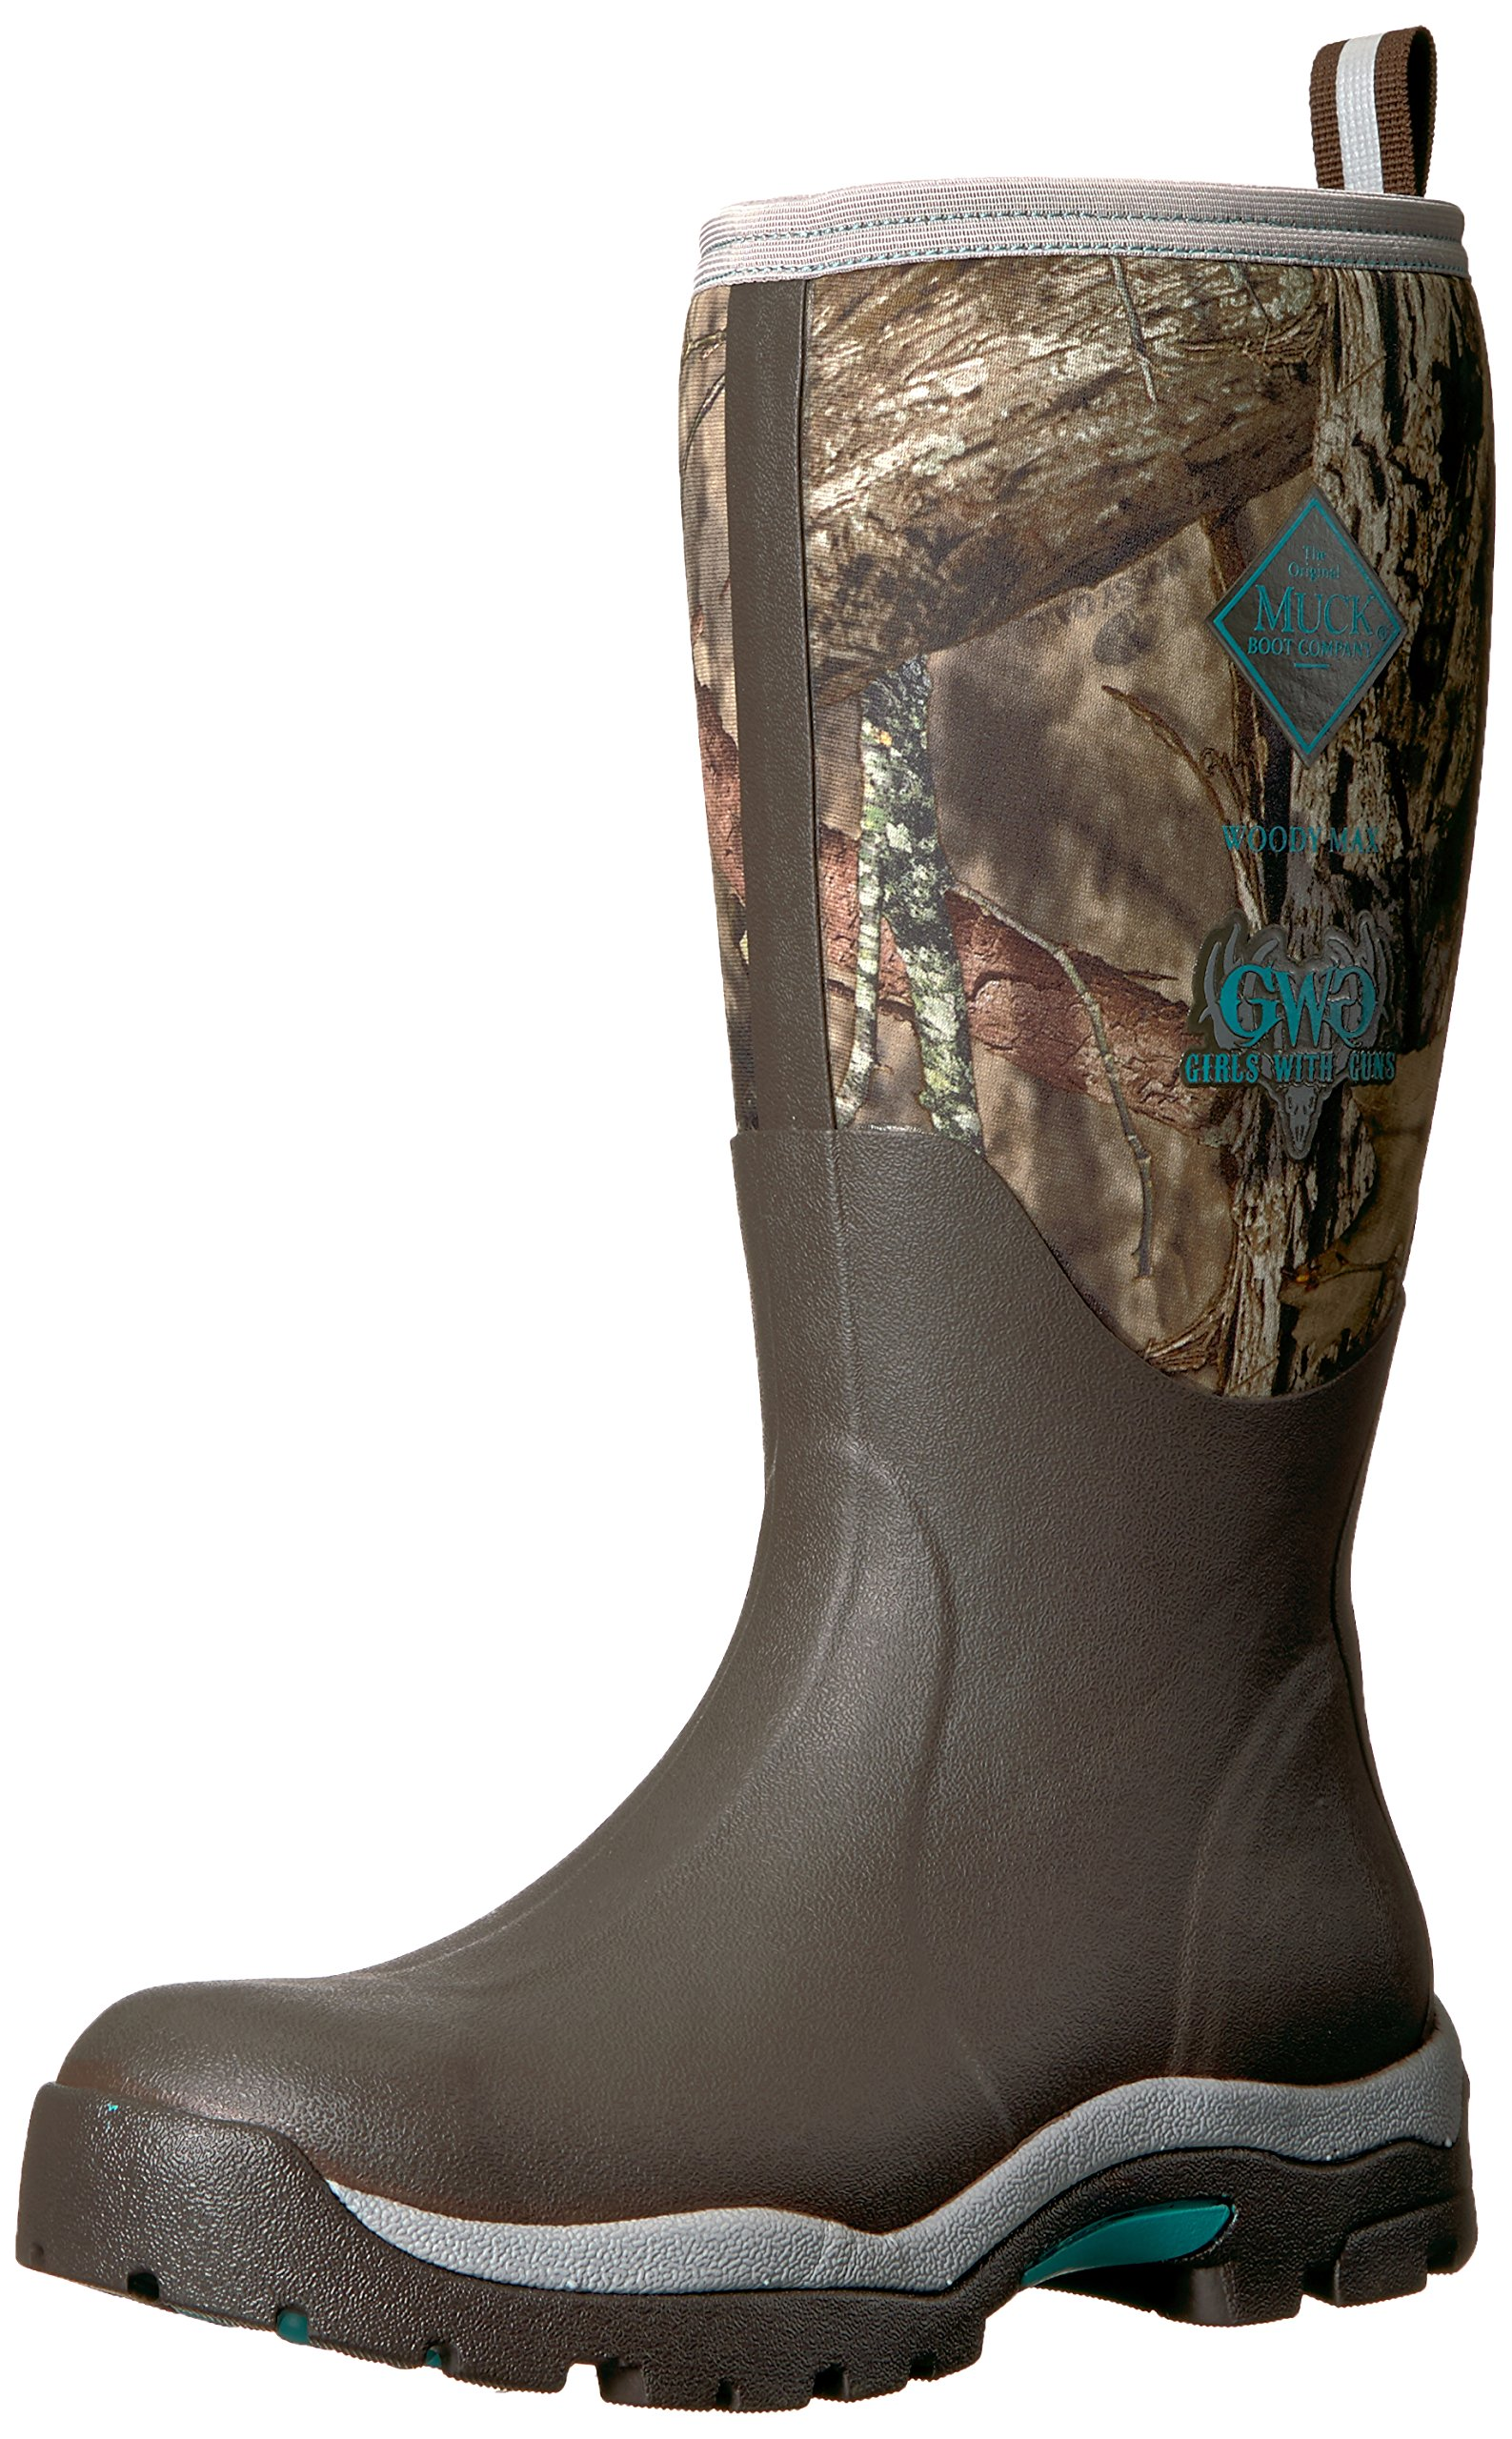 Muck Boot Women's Woody PK Work Boot, Bark, Mossy Oak Break-up/Teal, 8 M US